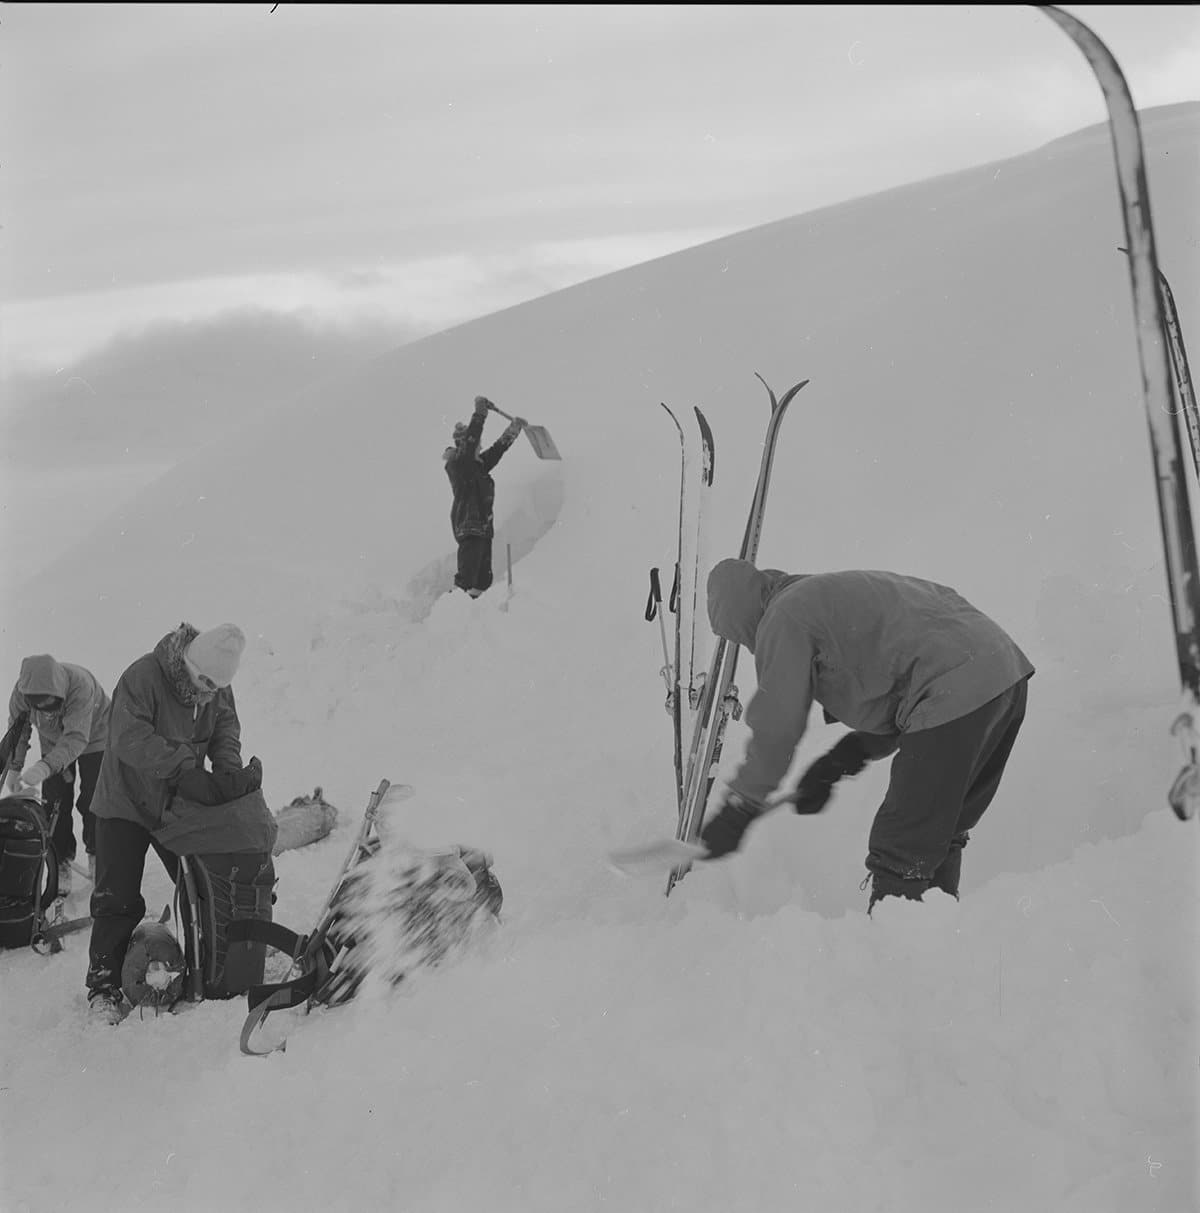 Finding shelter in Rondane in 1973. | Photo: Kristian Hilsen - Mittet & Co. AS nb.no cc pdm.